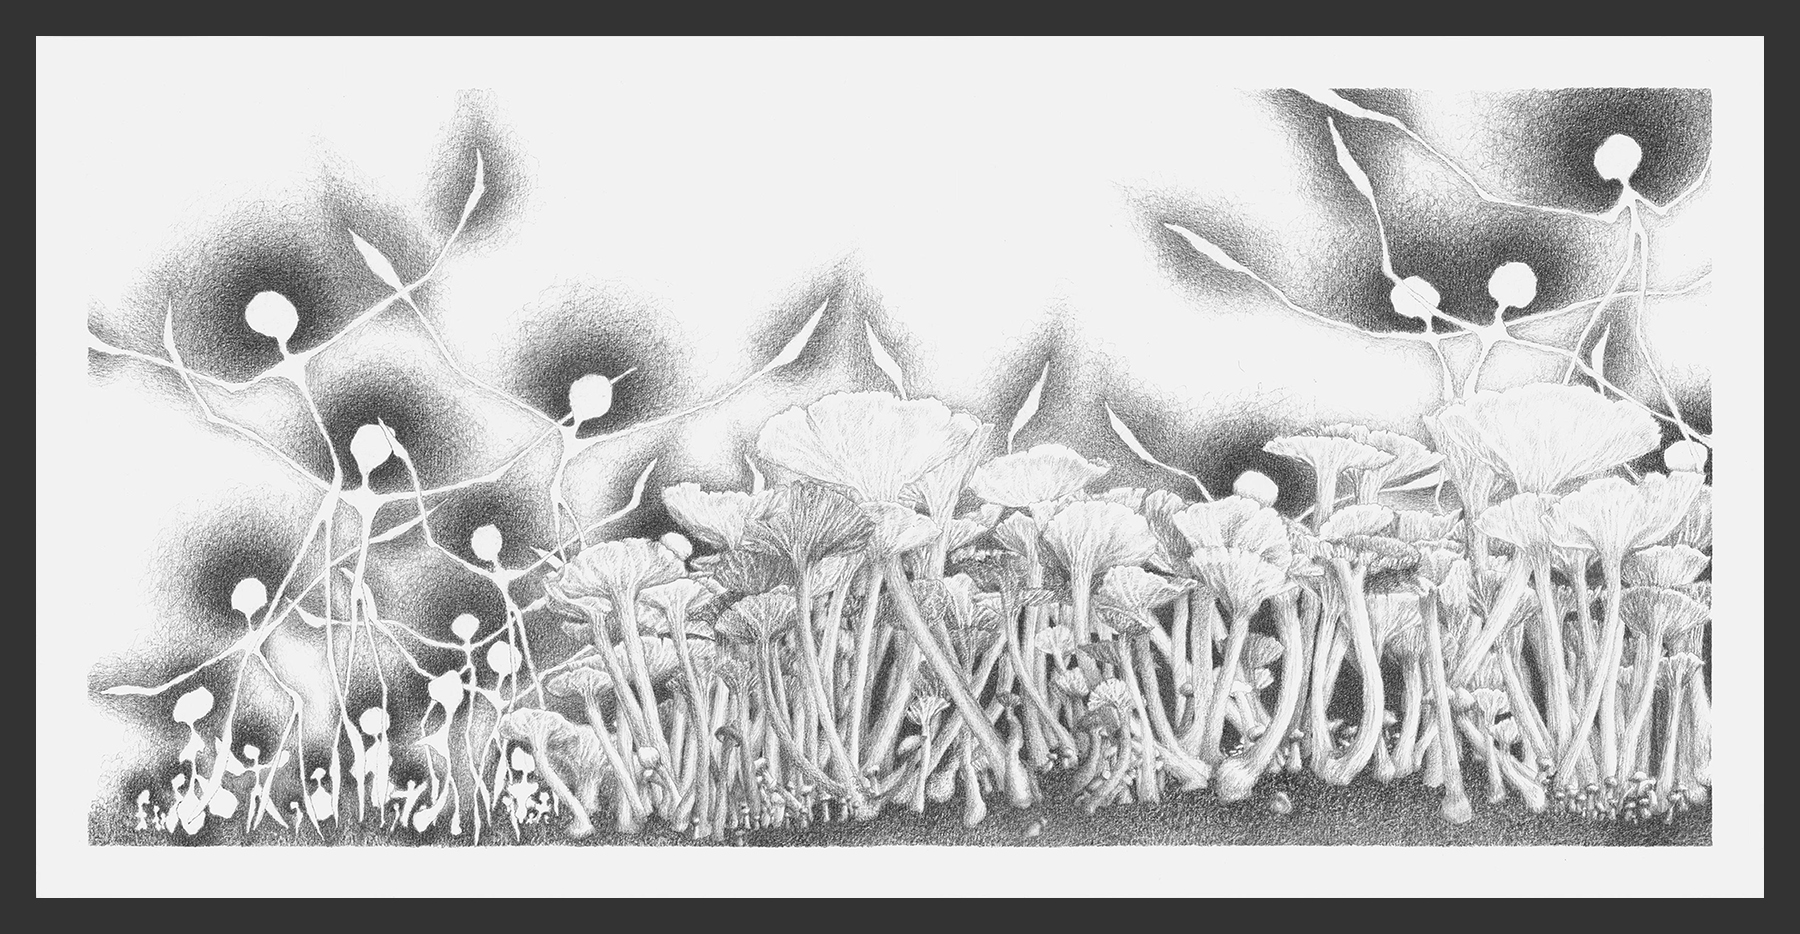 18-Website-Meditation-XVIII-Graphite-12x24-Astrid-Muller-Karger